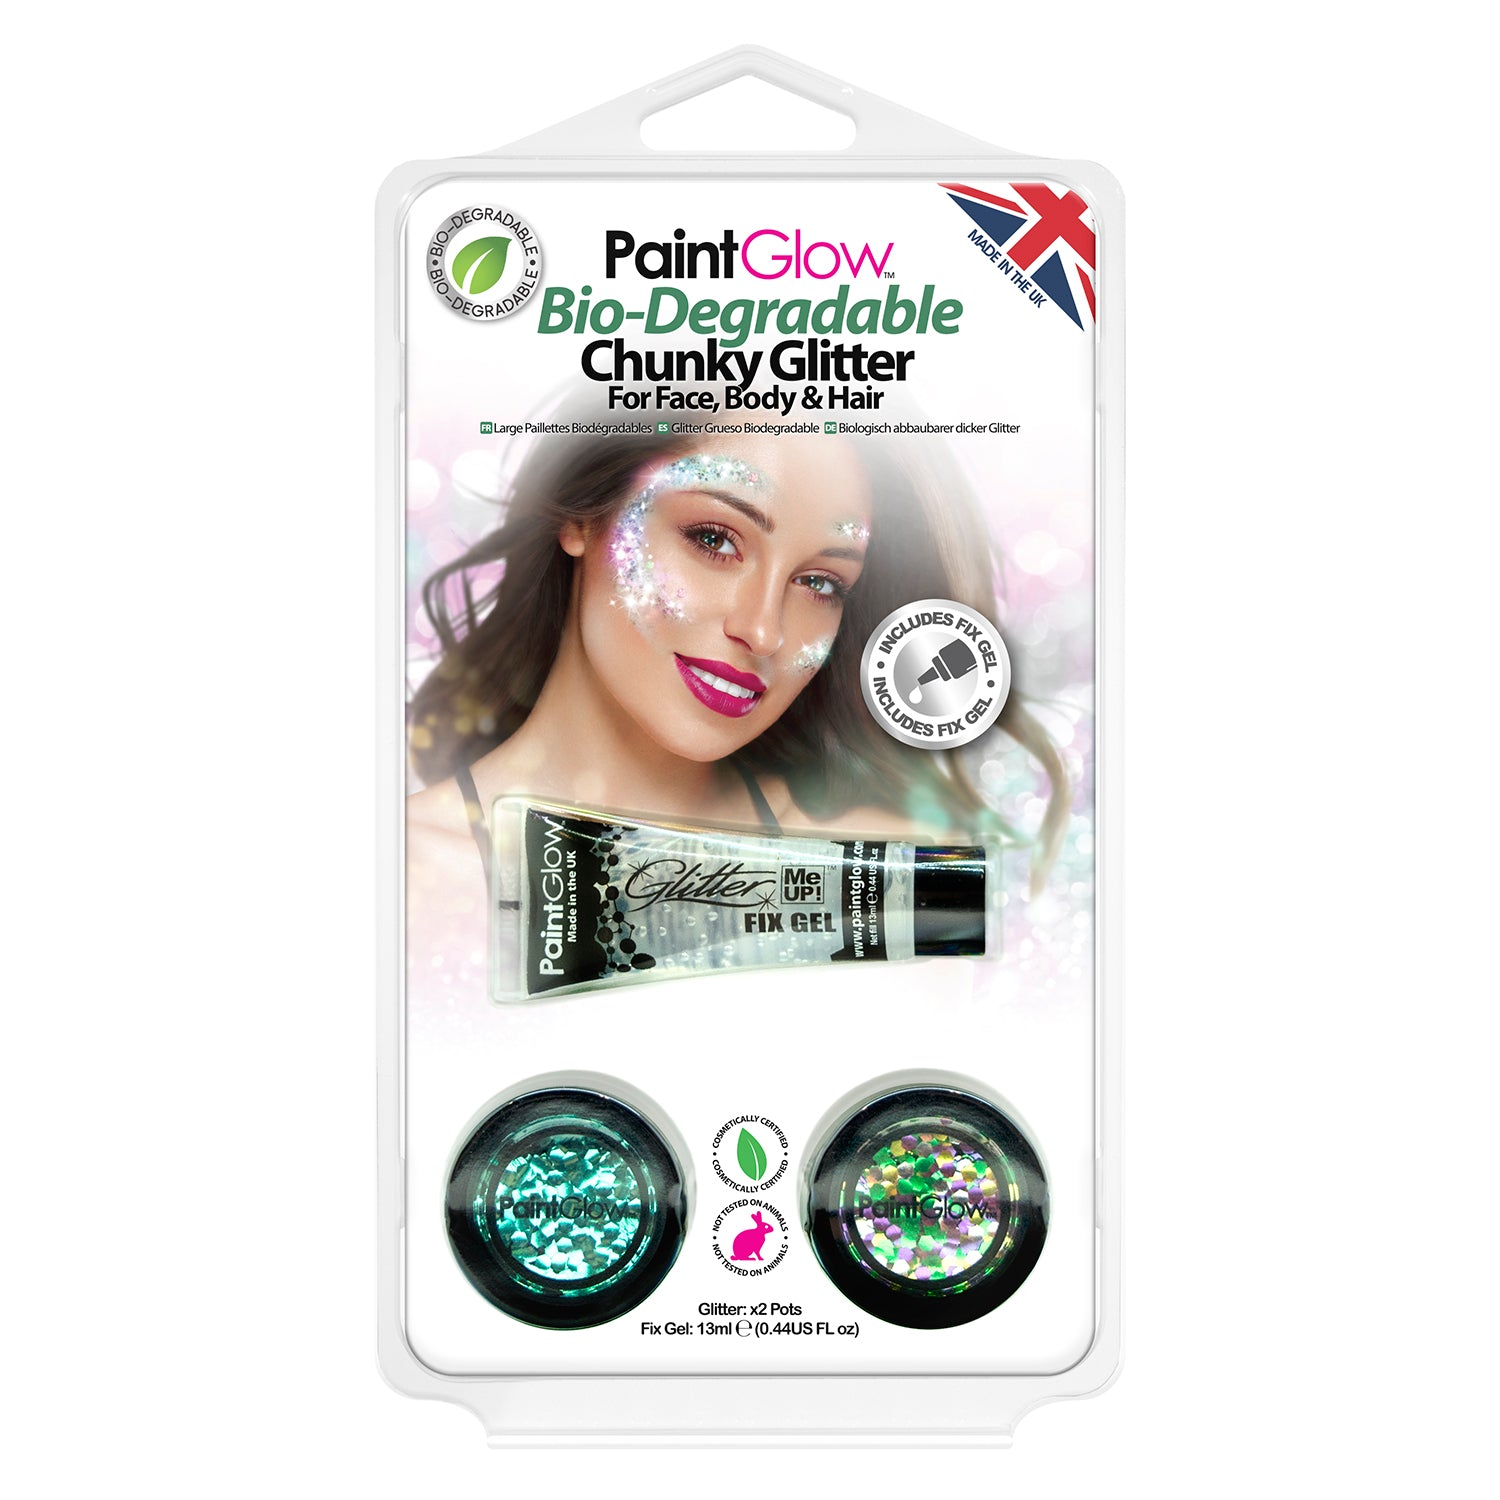 PaintGlow Bio-Degradable Chunky Glitter for Face, Body & Hair (Pack 1)